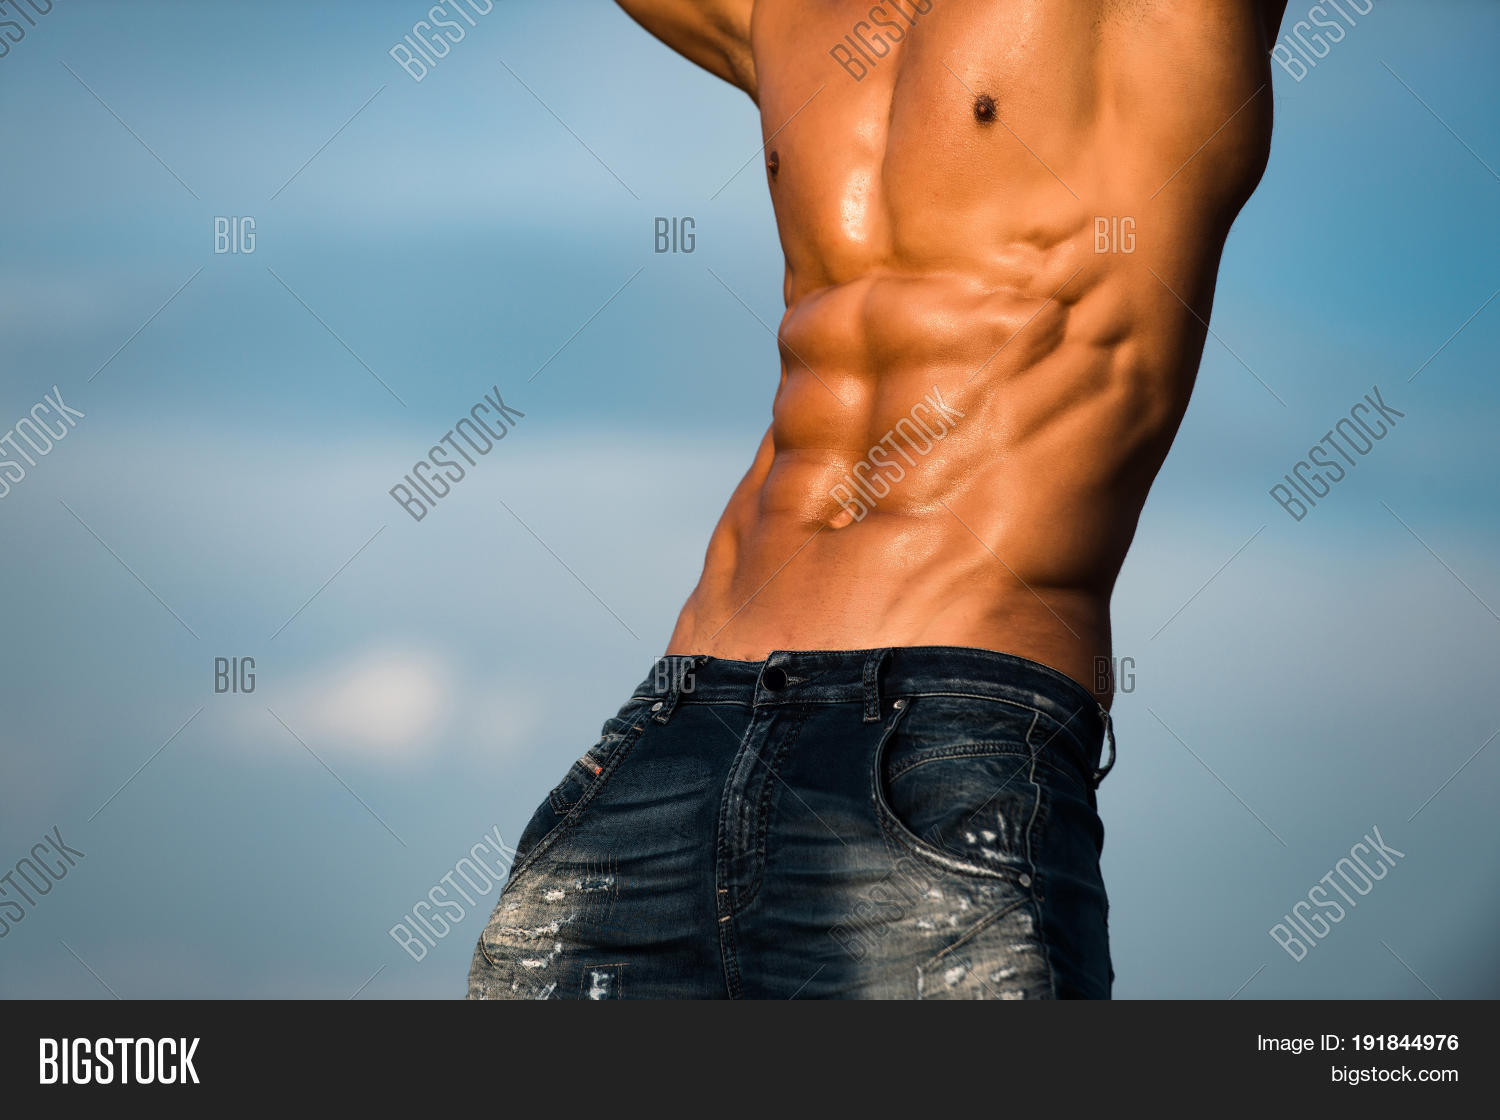 Muscular Torso Athlete Image Photo Free Trial Bigstock